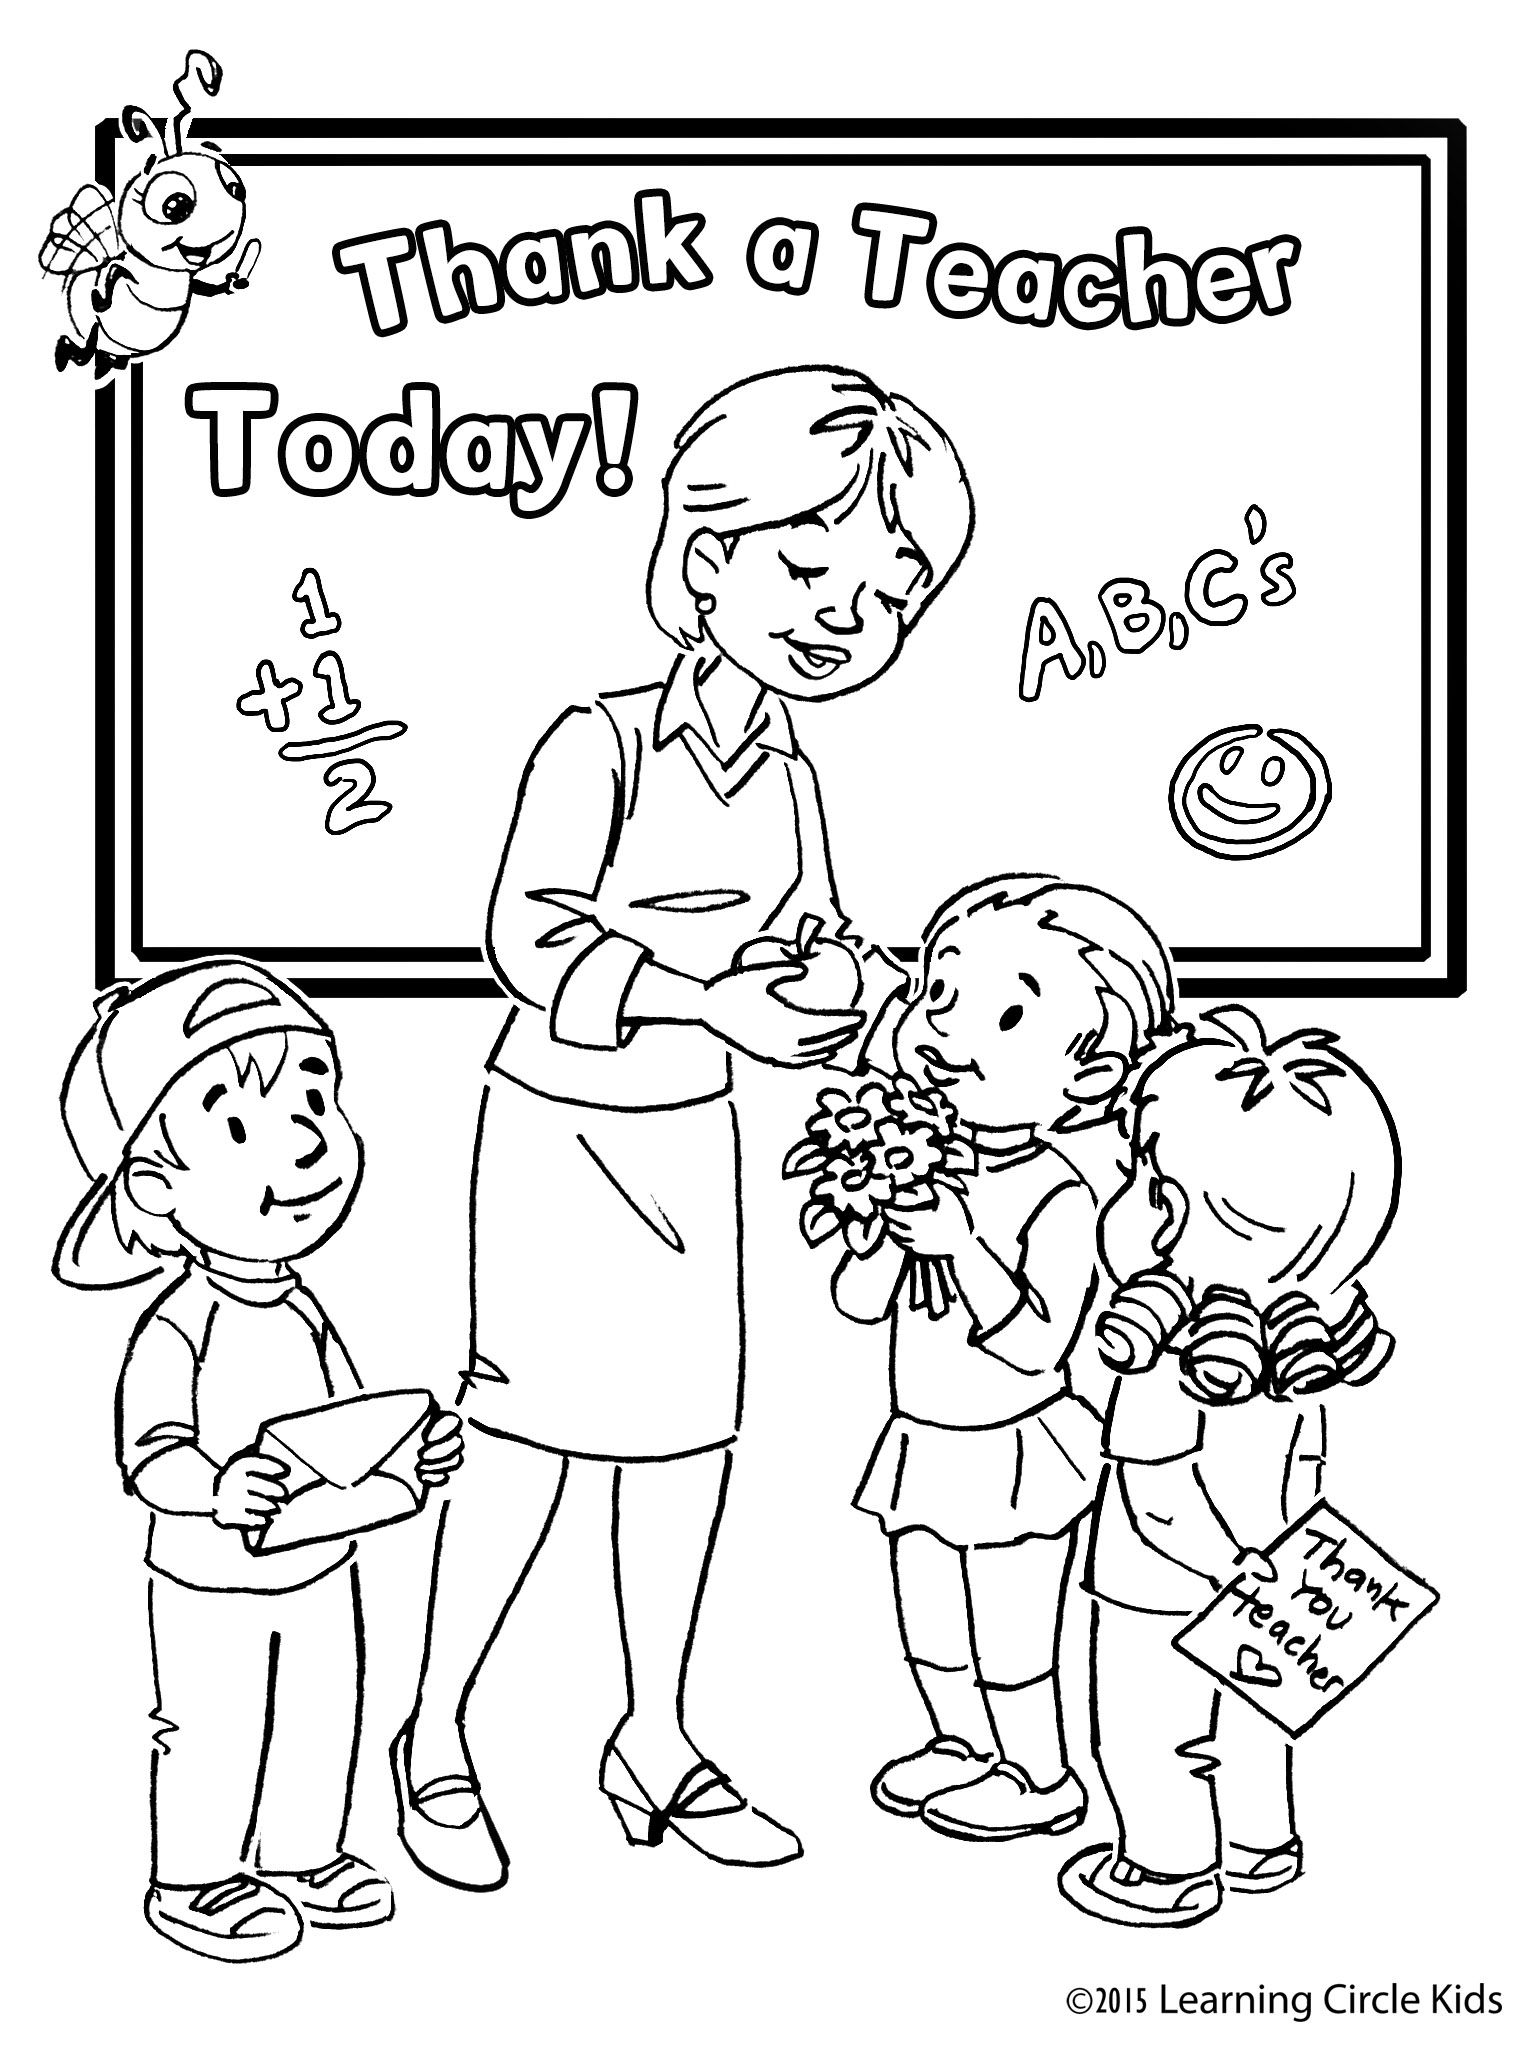 Free Kids Coloring Page For Teacher Appreciation Day Http Coloring Pages Of Teachers